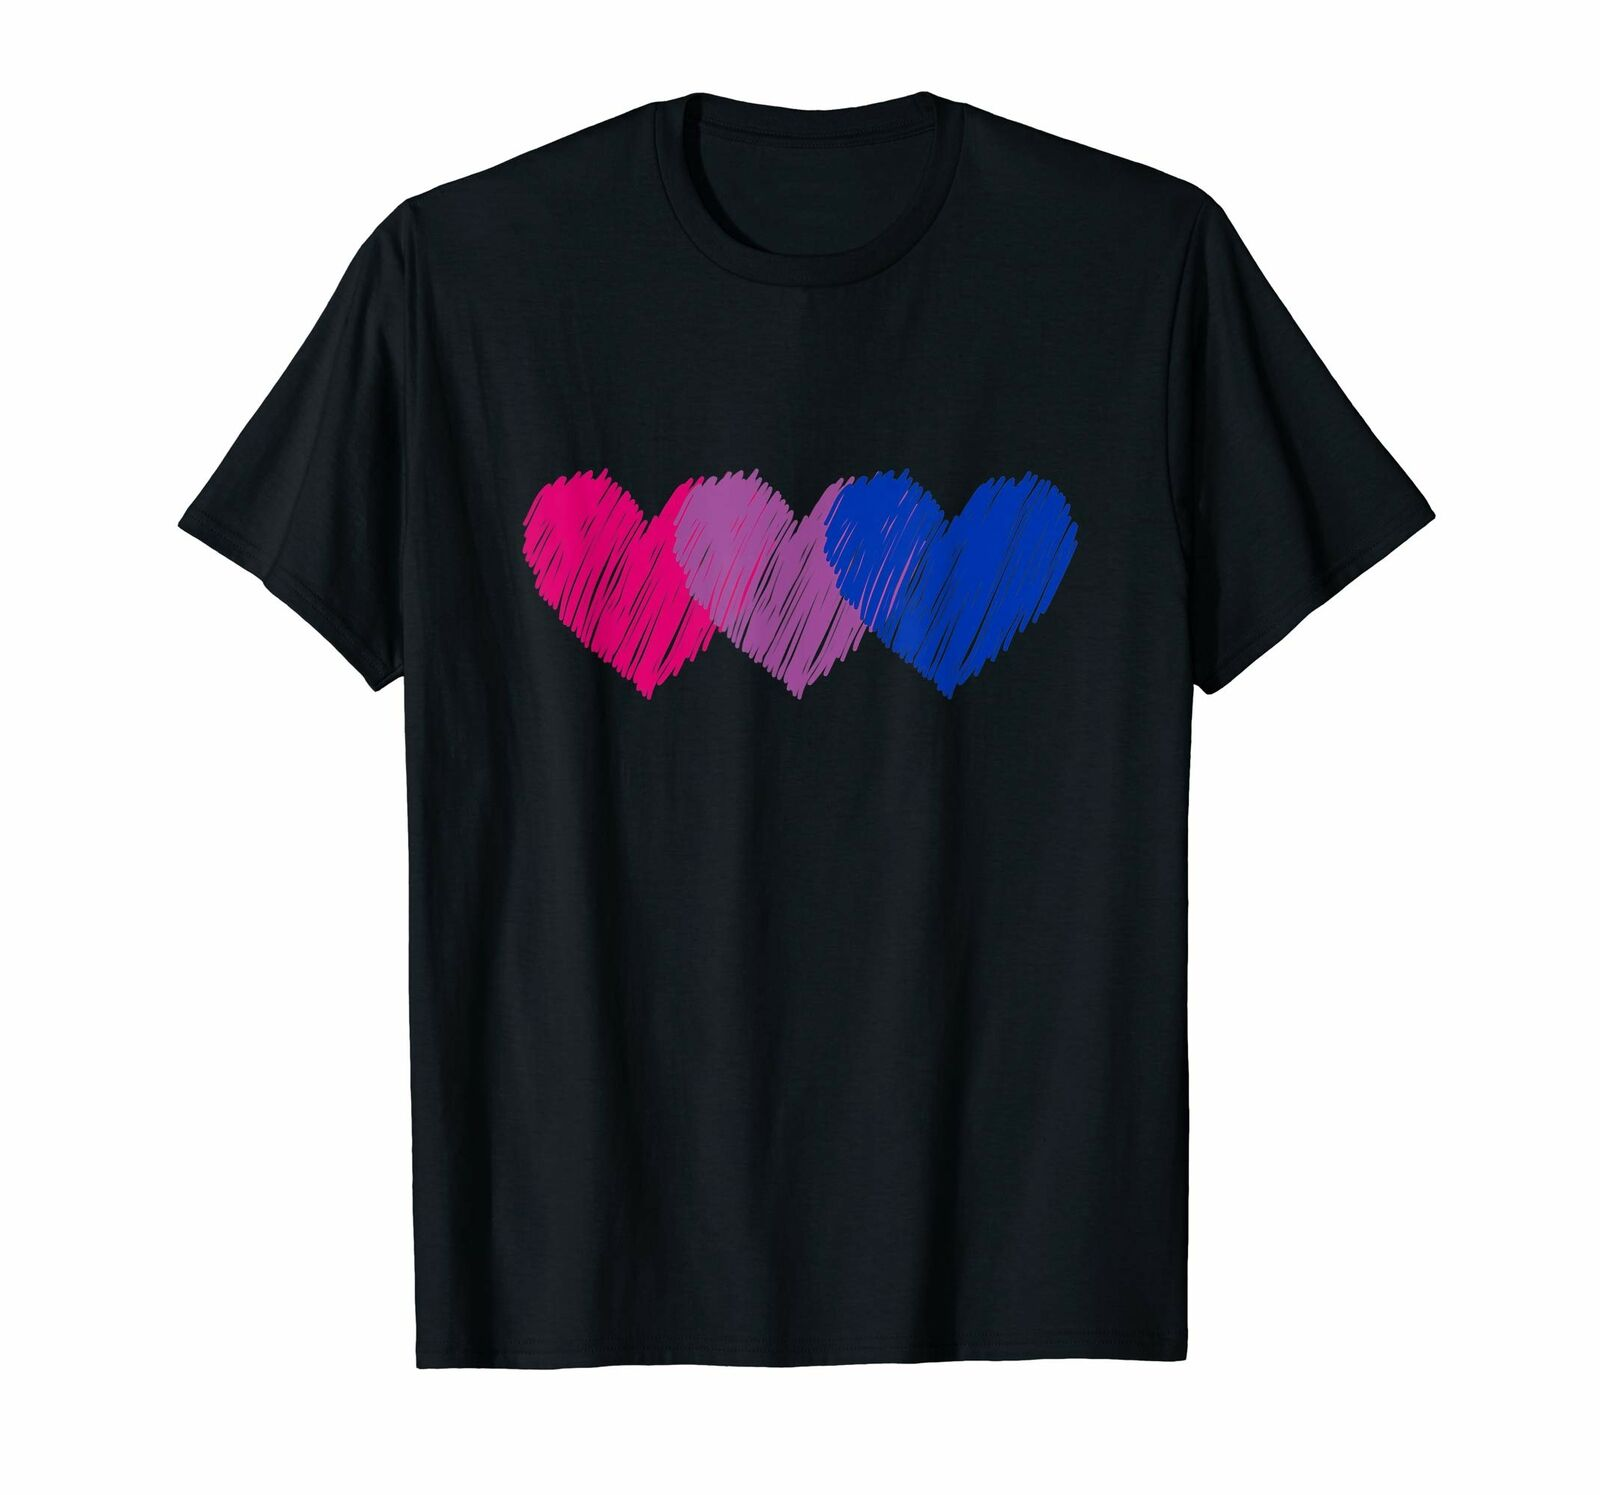 Black <font><b>Bisexual</b></font> Flag Hearts Love <font><b>Shirt</b></font> Lgbt Bi Pride T-<font><b>Shirt</b></font> 100% Cotton Oversized Tee <font><b>Shirt</b></font> image